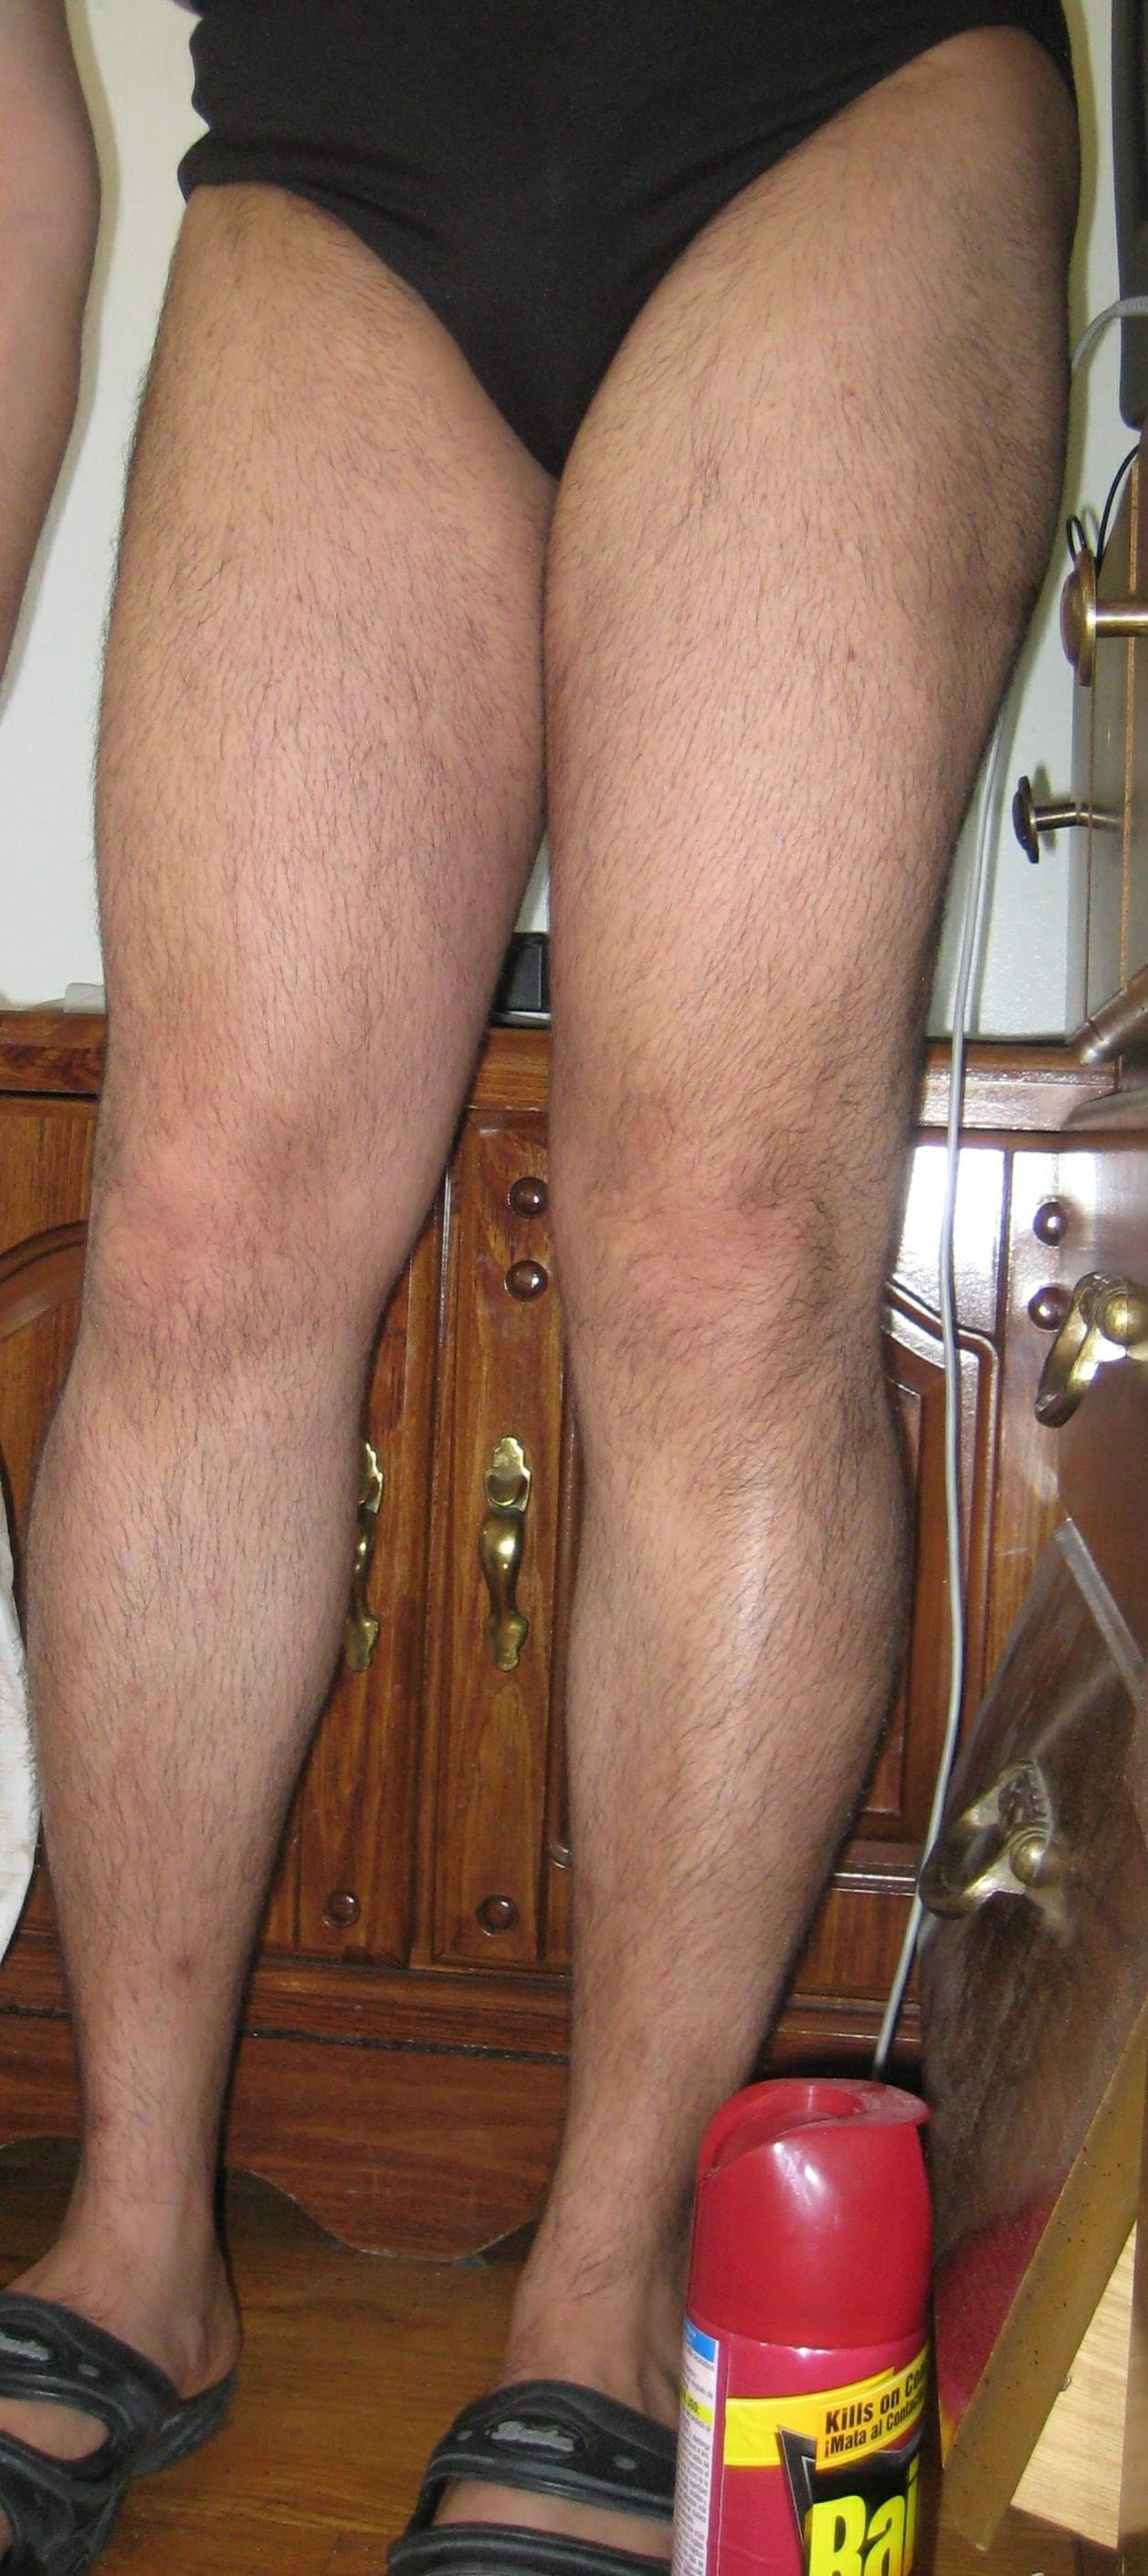 Do hairy have legs women why Being hairy